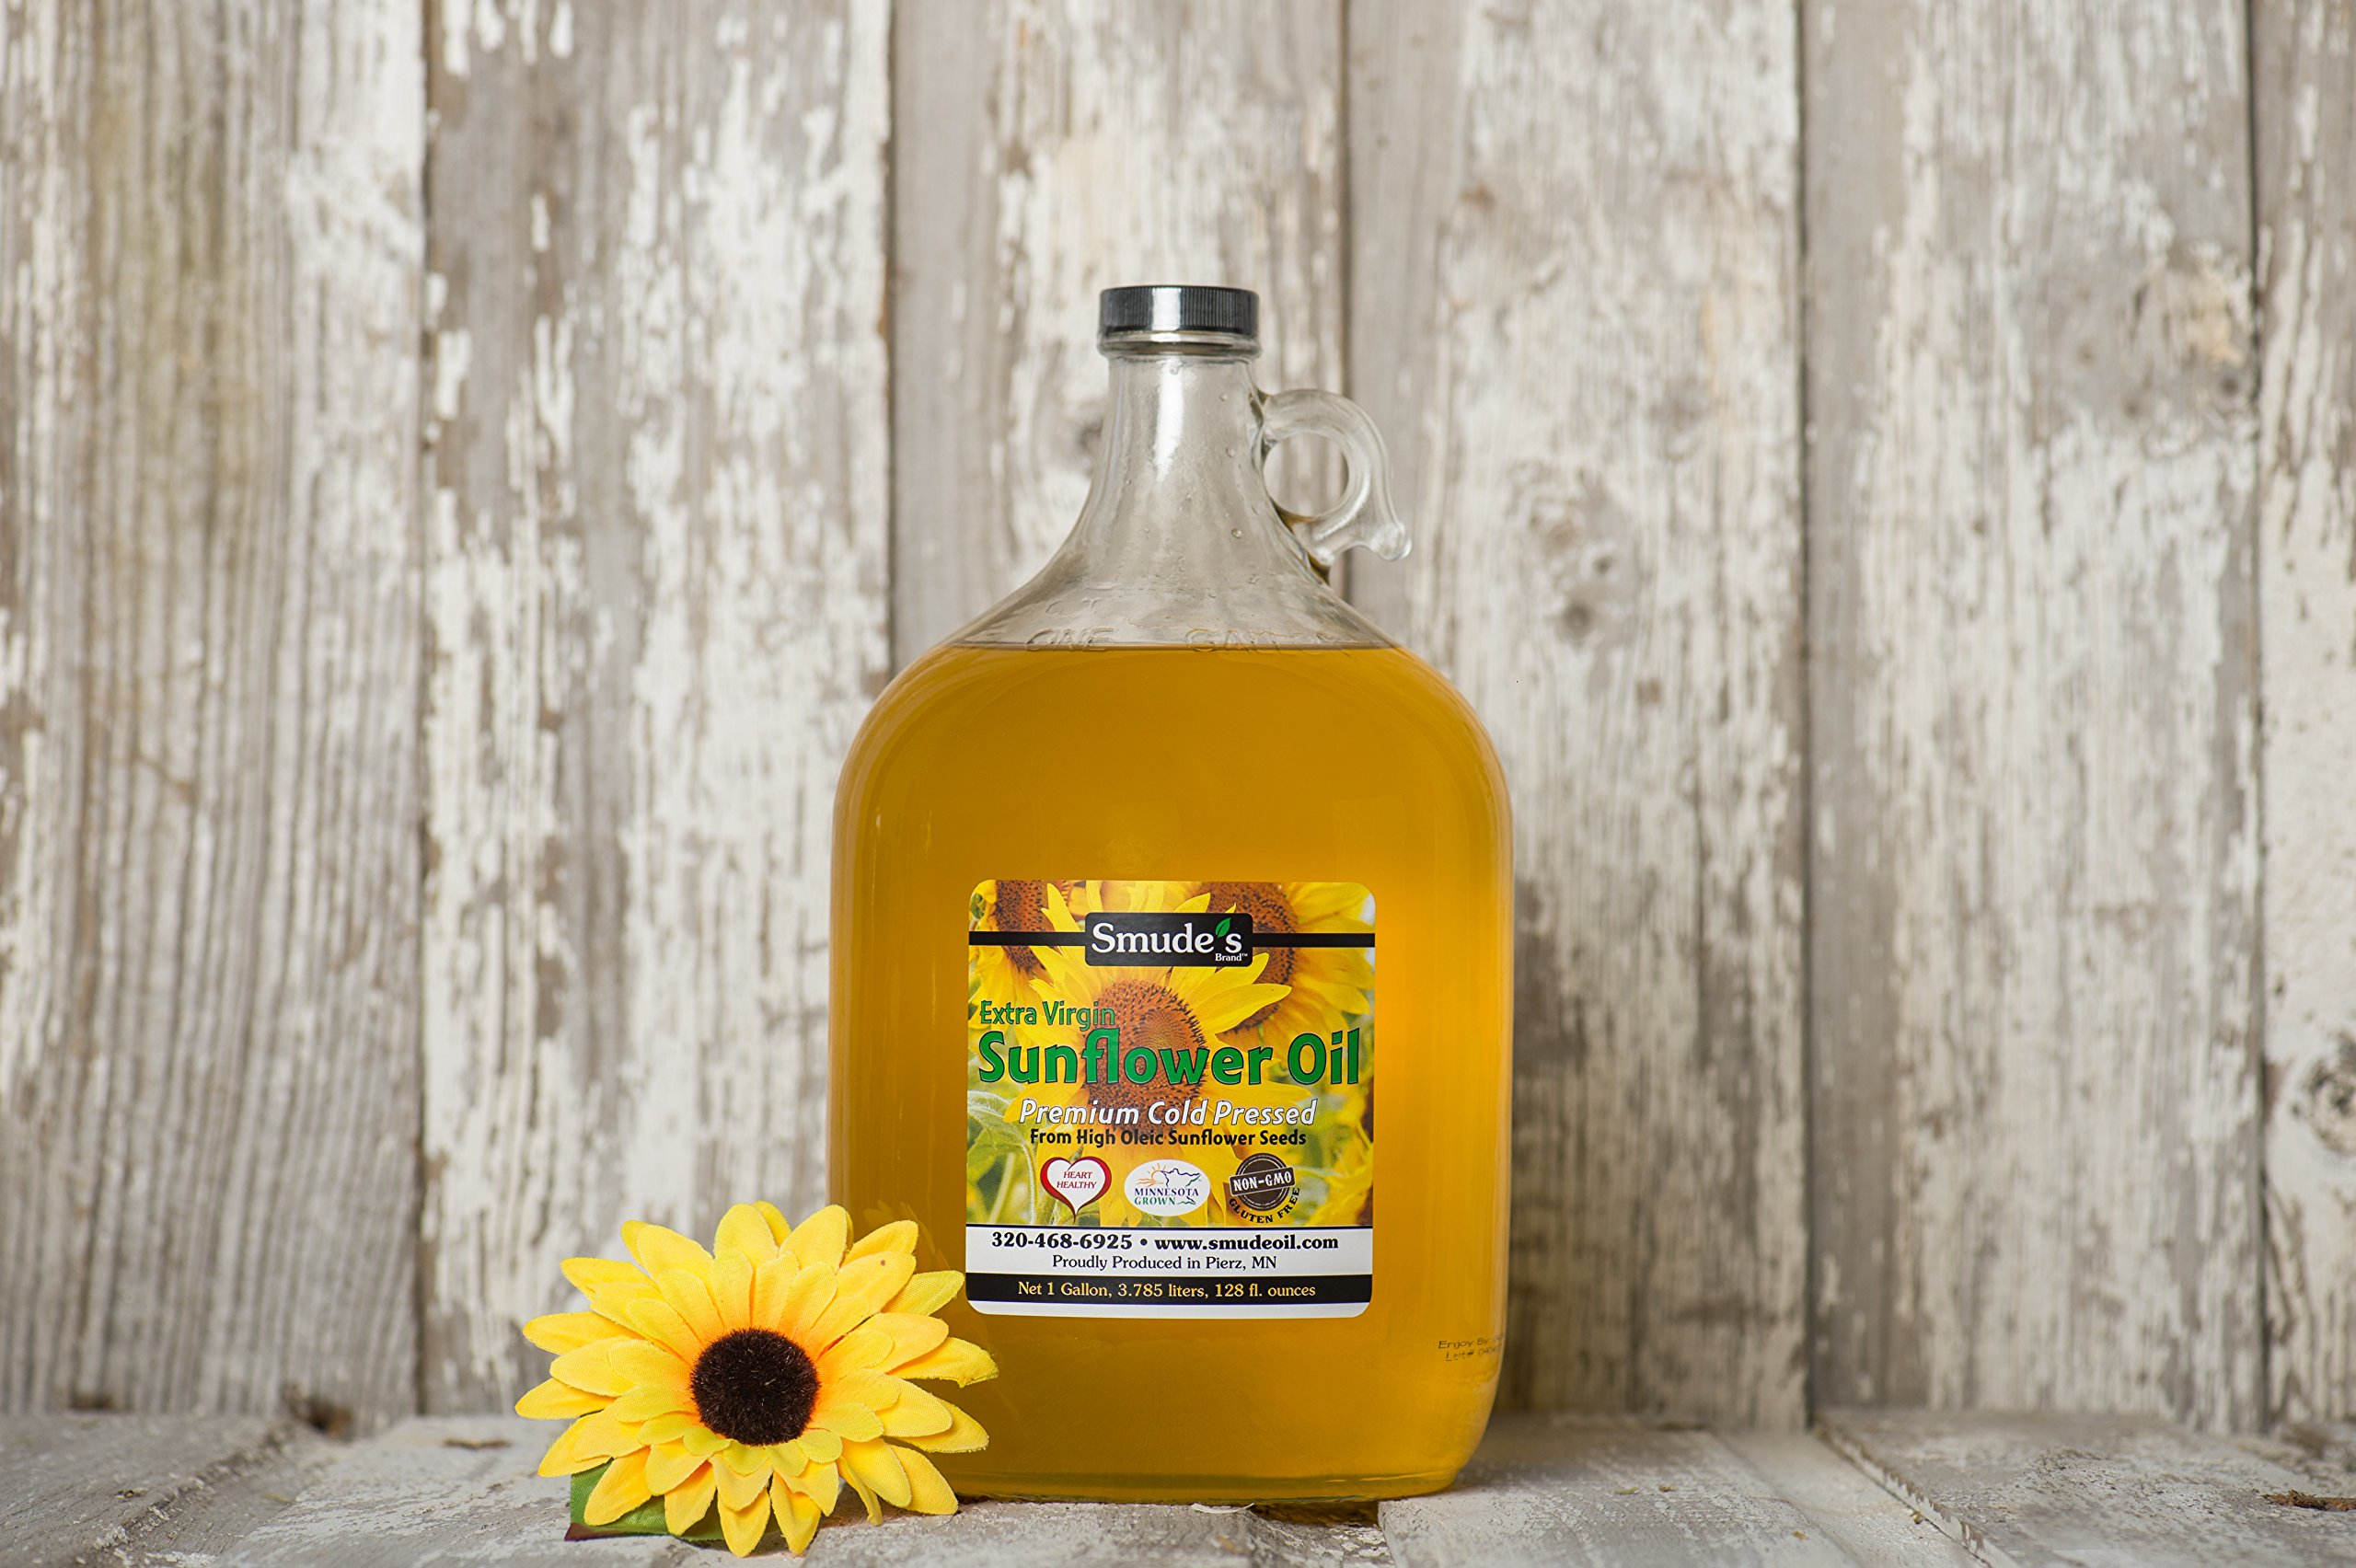 Smude Sunflower Oil 1 Gallon Glass [Cold Pressed, All Natural, NonGMO Cooking Oil] by Smude's Brand